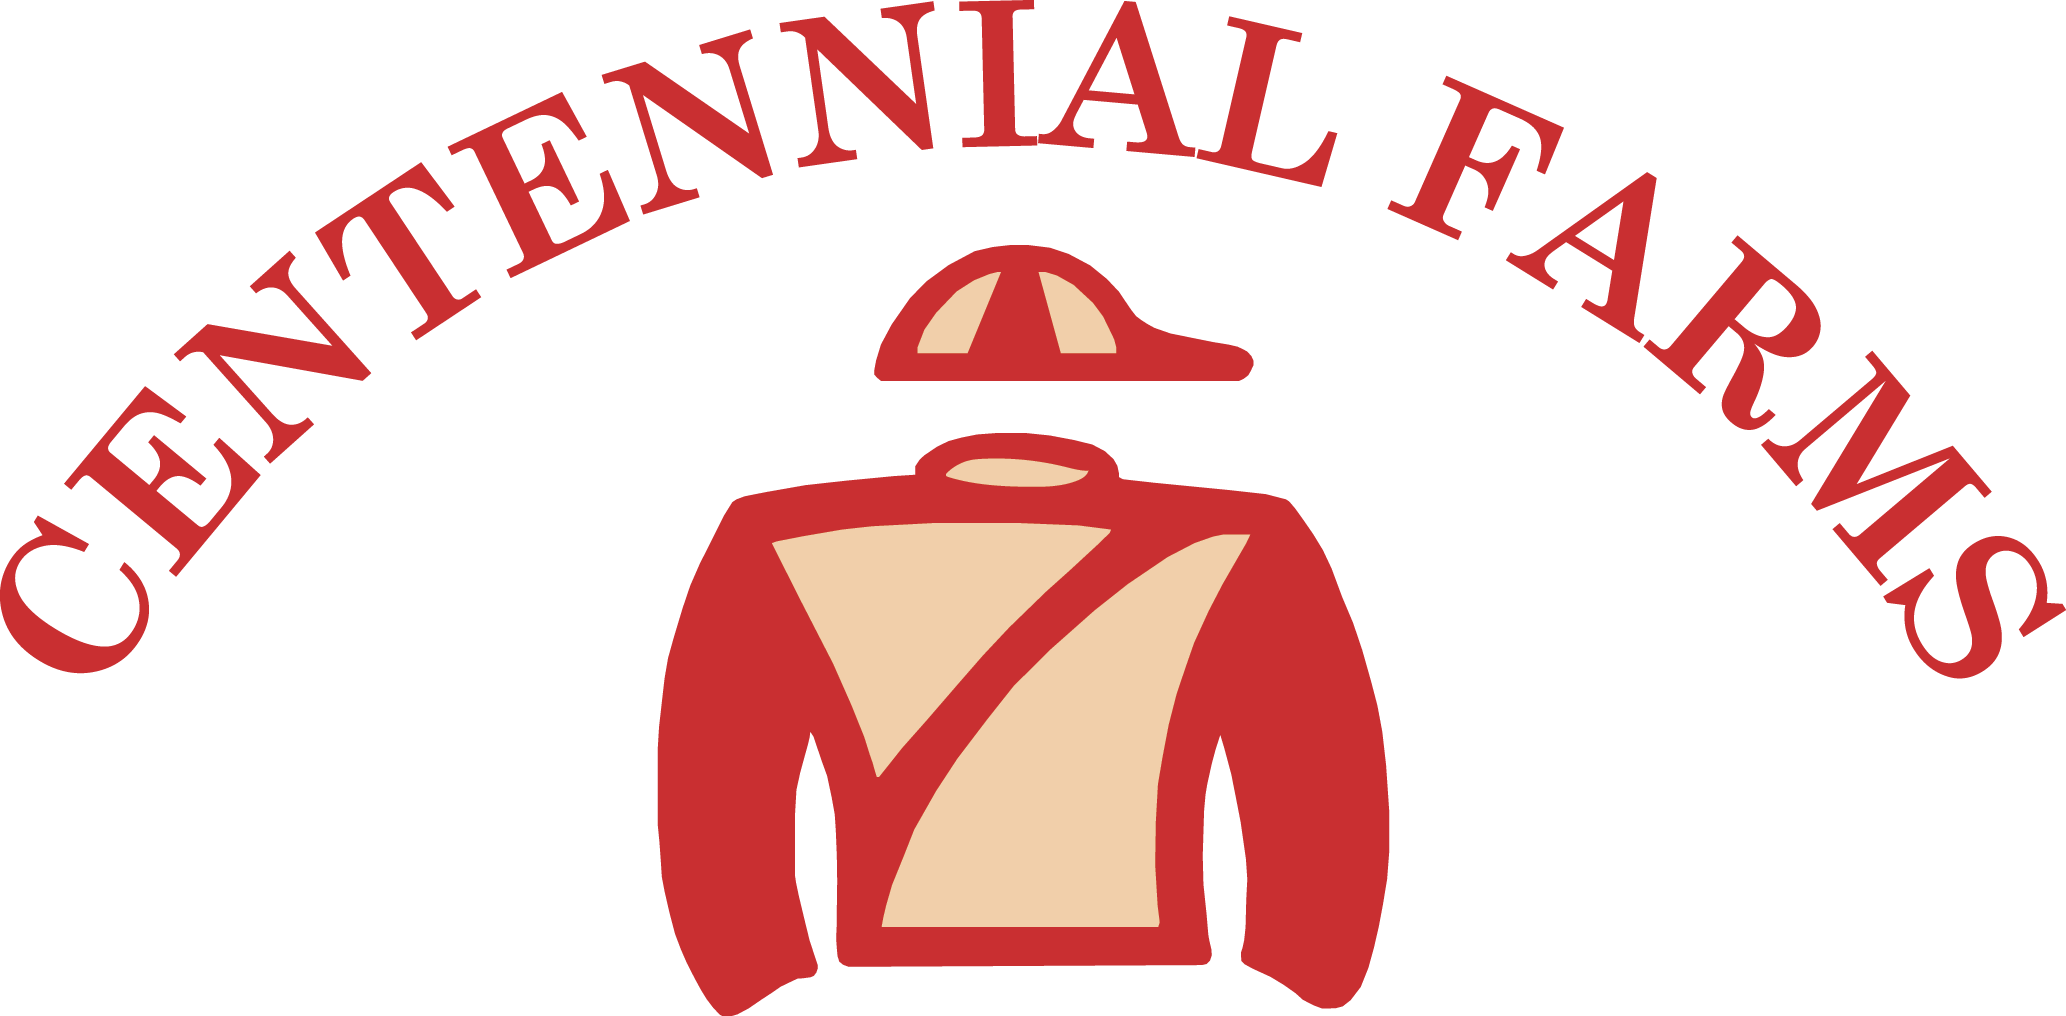 CentennialFarms copy.png